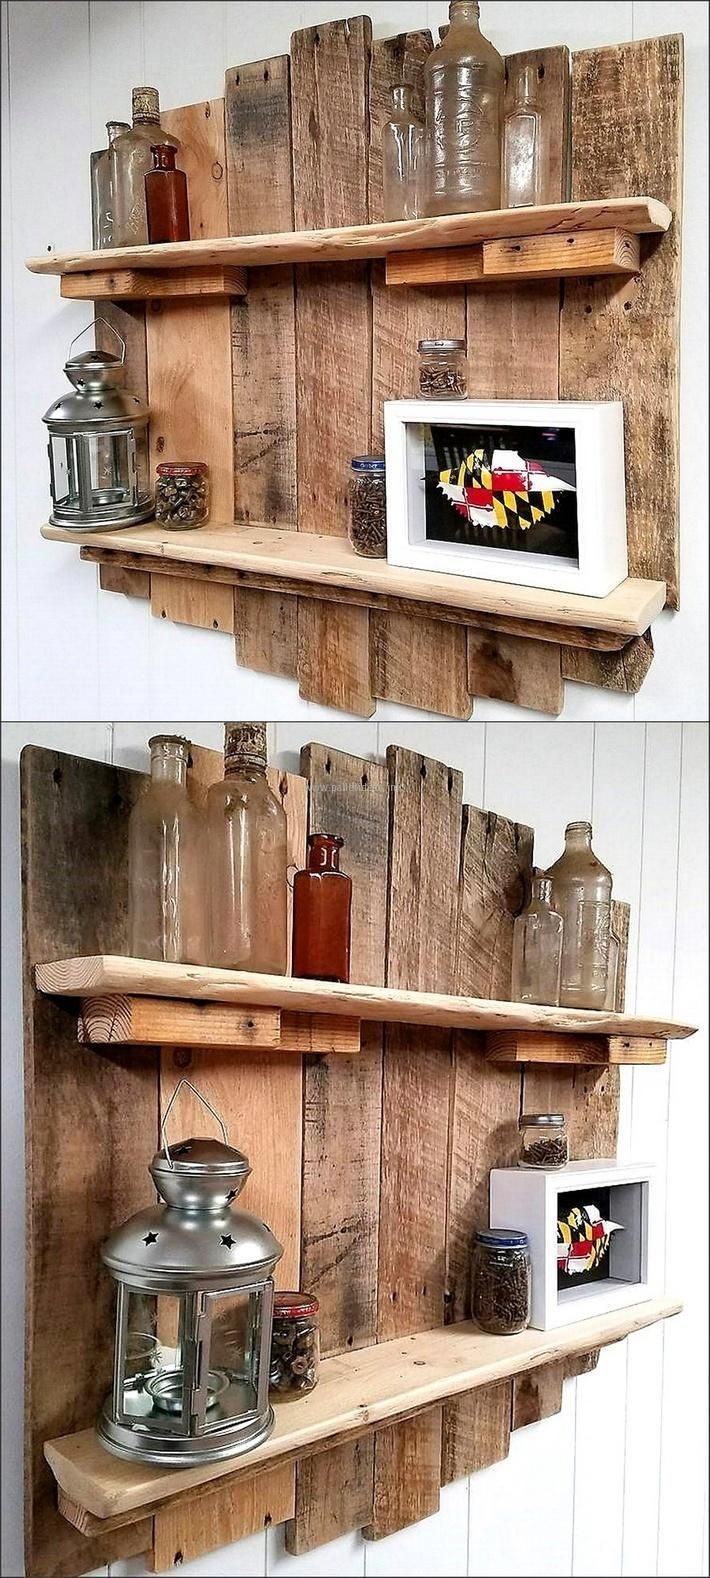 Cheap Home Furnishing with Recycled Pallets | Pallet furniture, Wood pallets  and Pallets